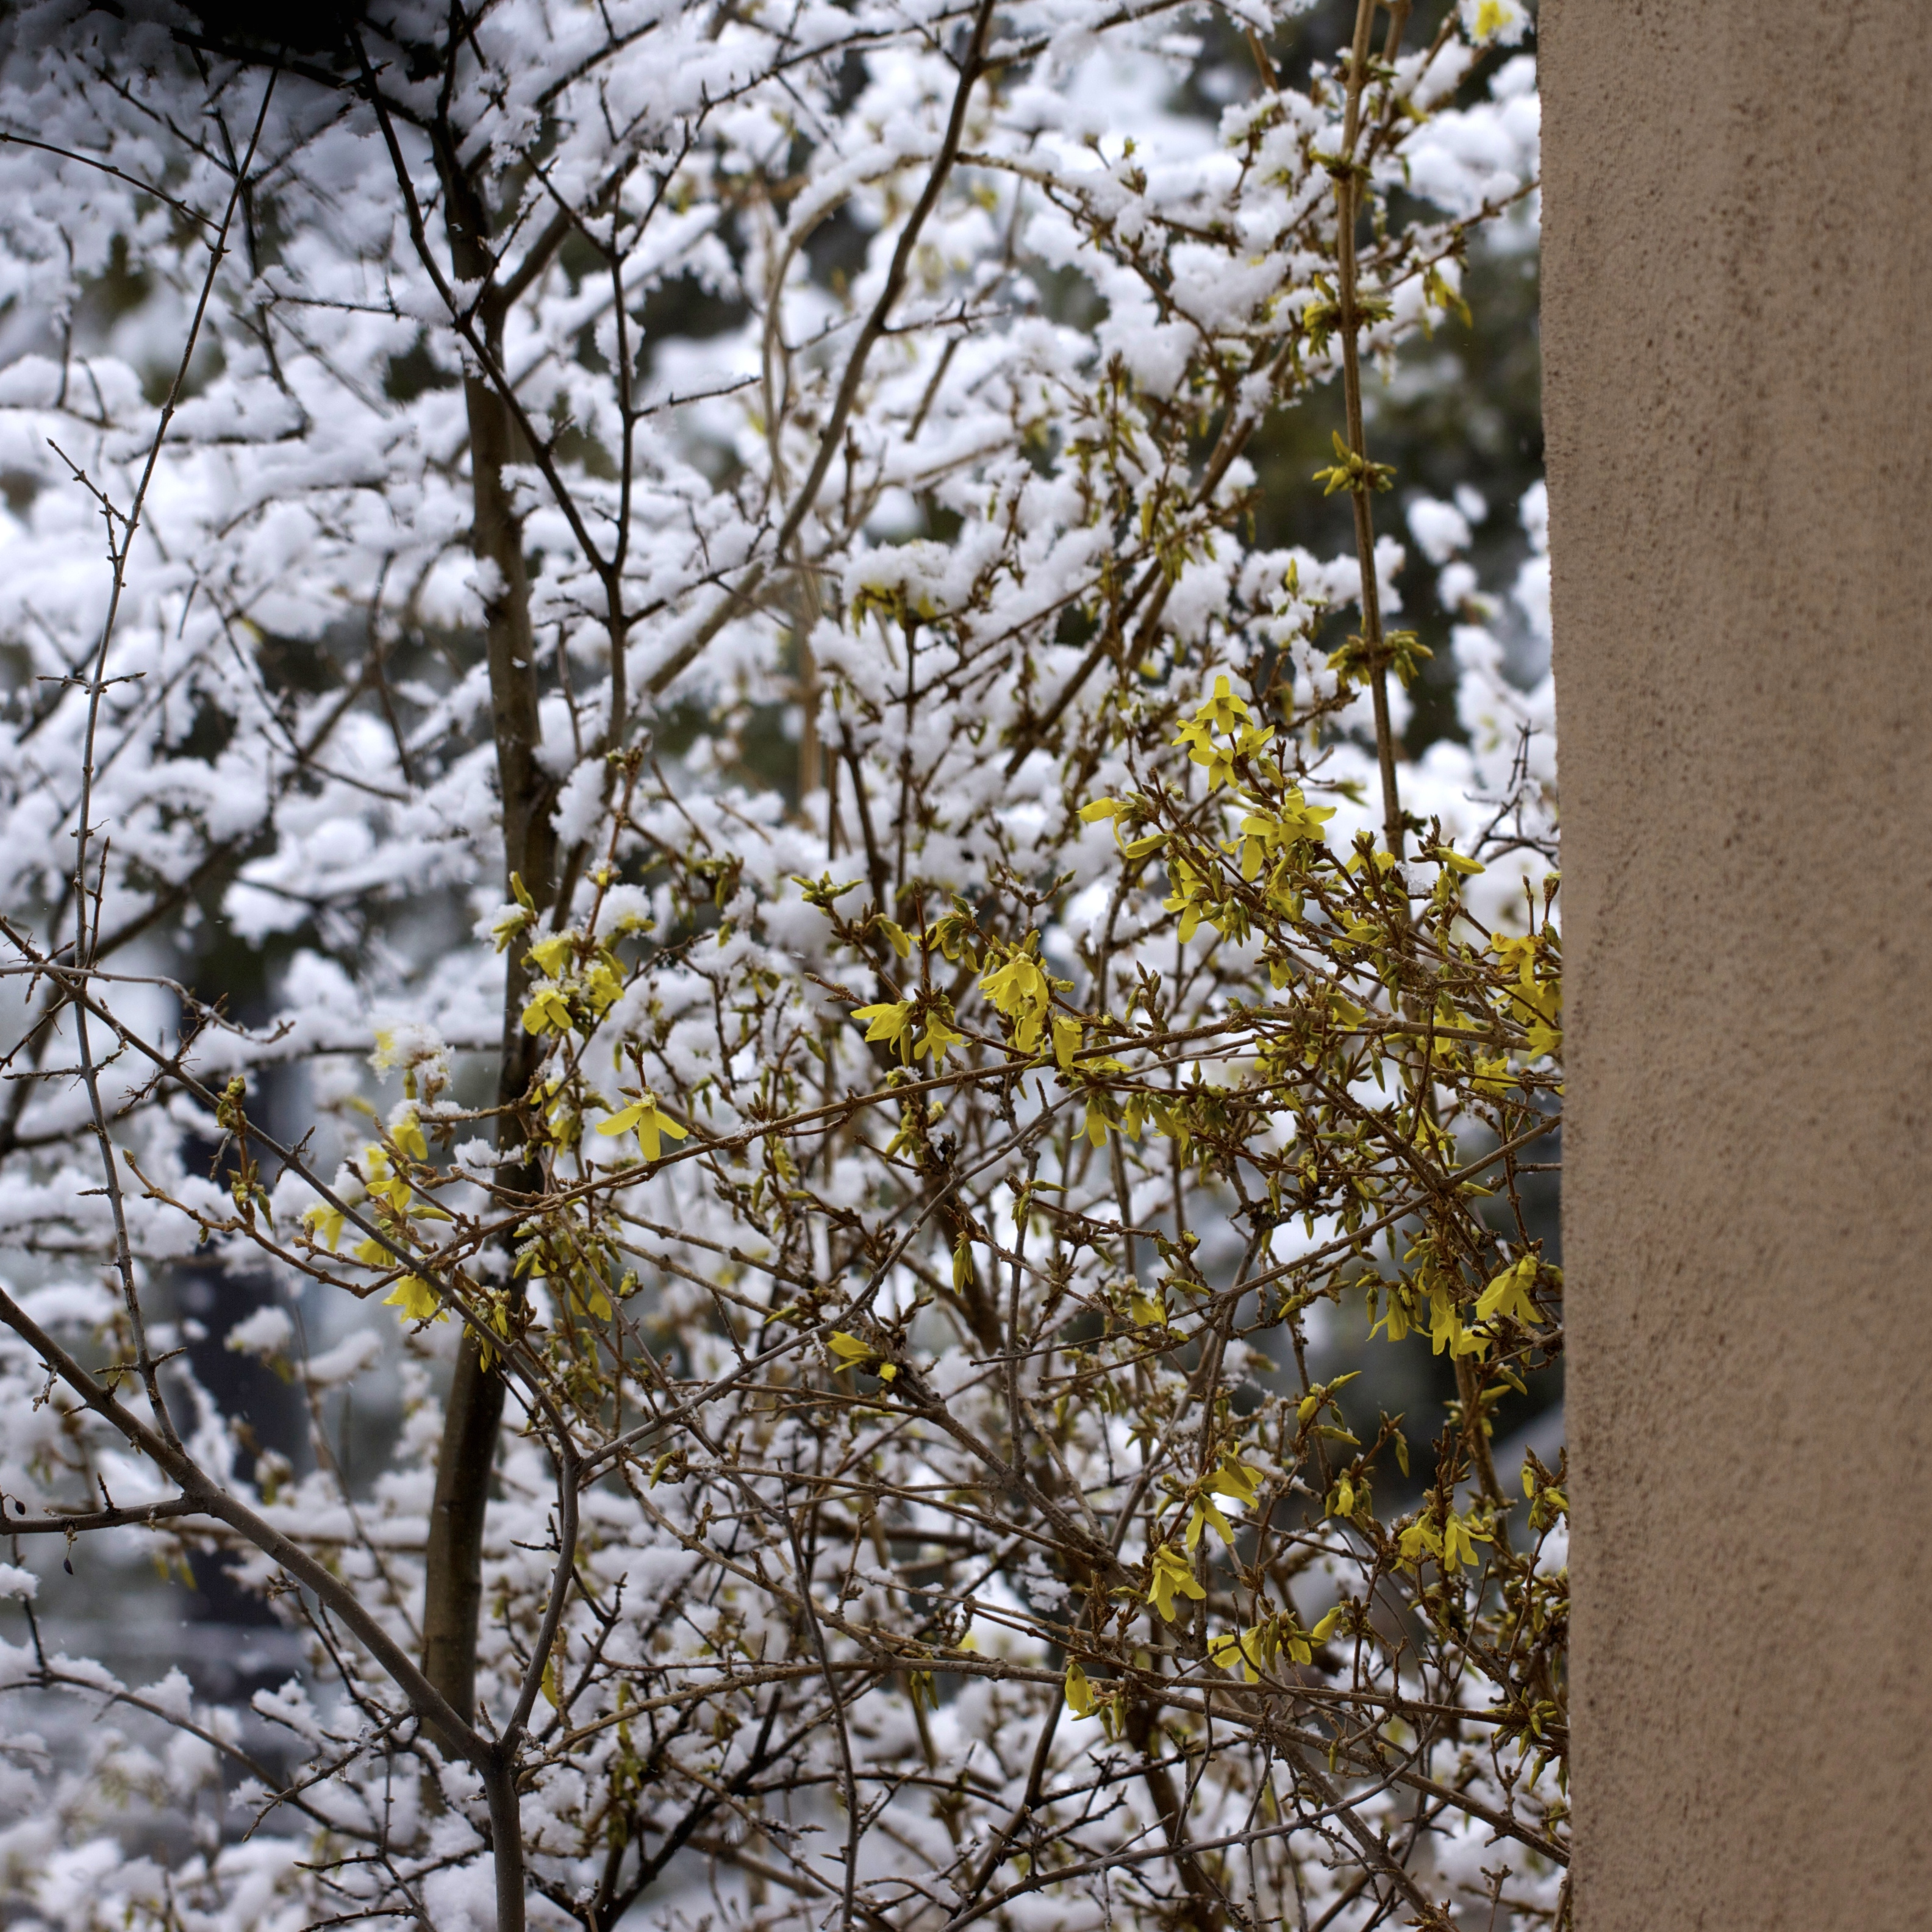 Forsythia in bloom a week ago one morning in a brief spring snow. I planted this forsythia in remembrance of my mother long before she died, knowing this day would come: she'd be gone and it's blossoms would remind me of her and eastern Easters.